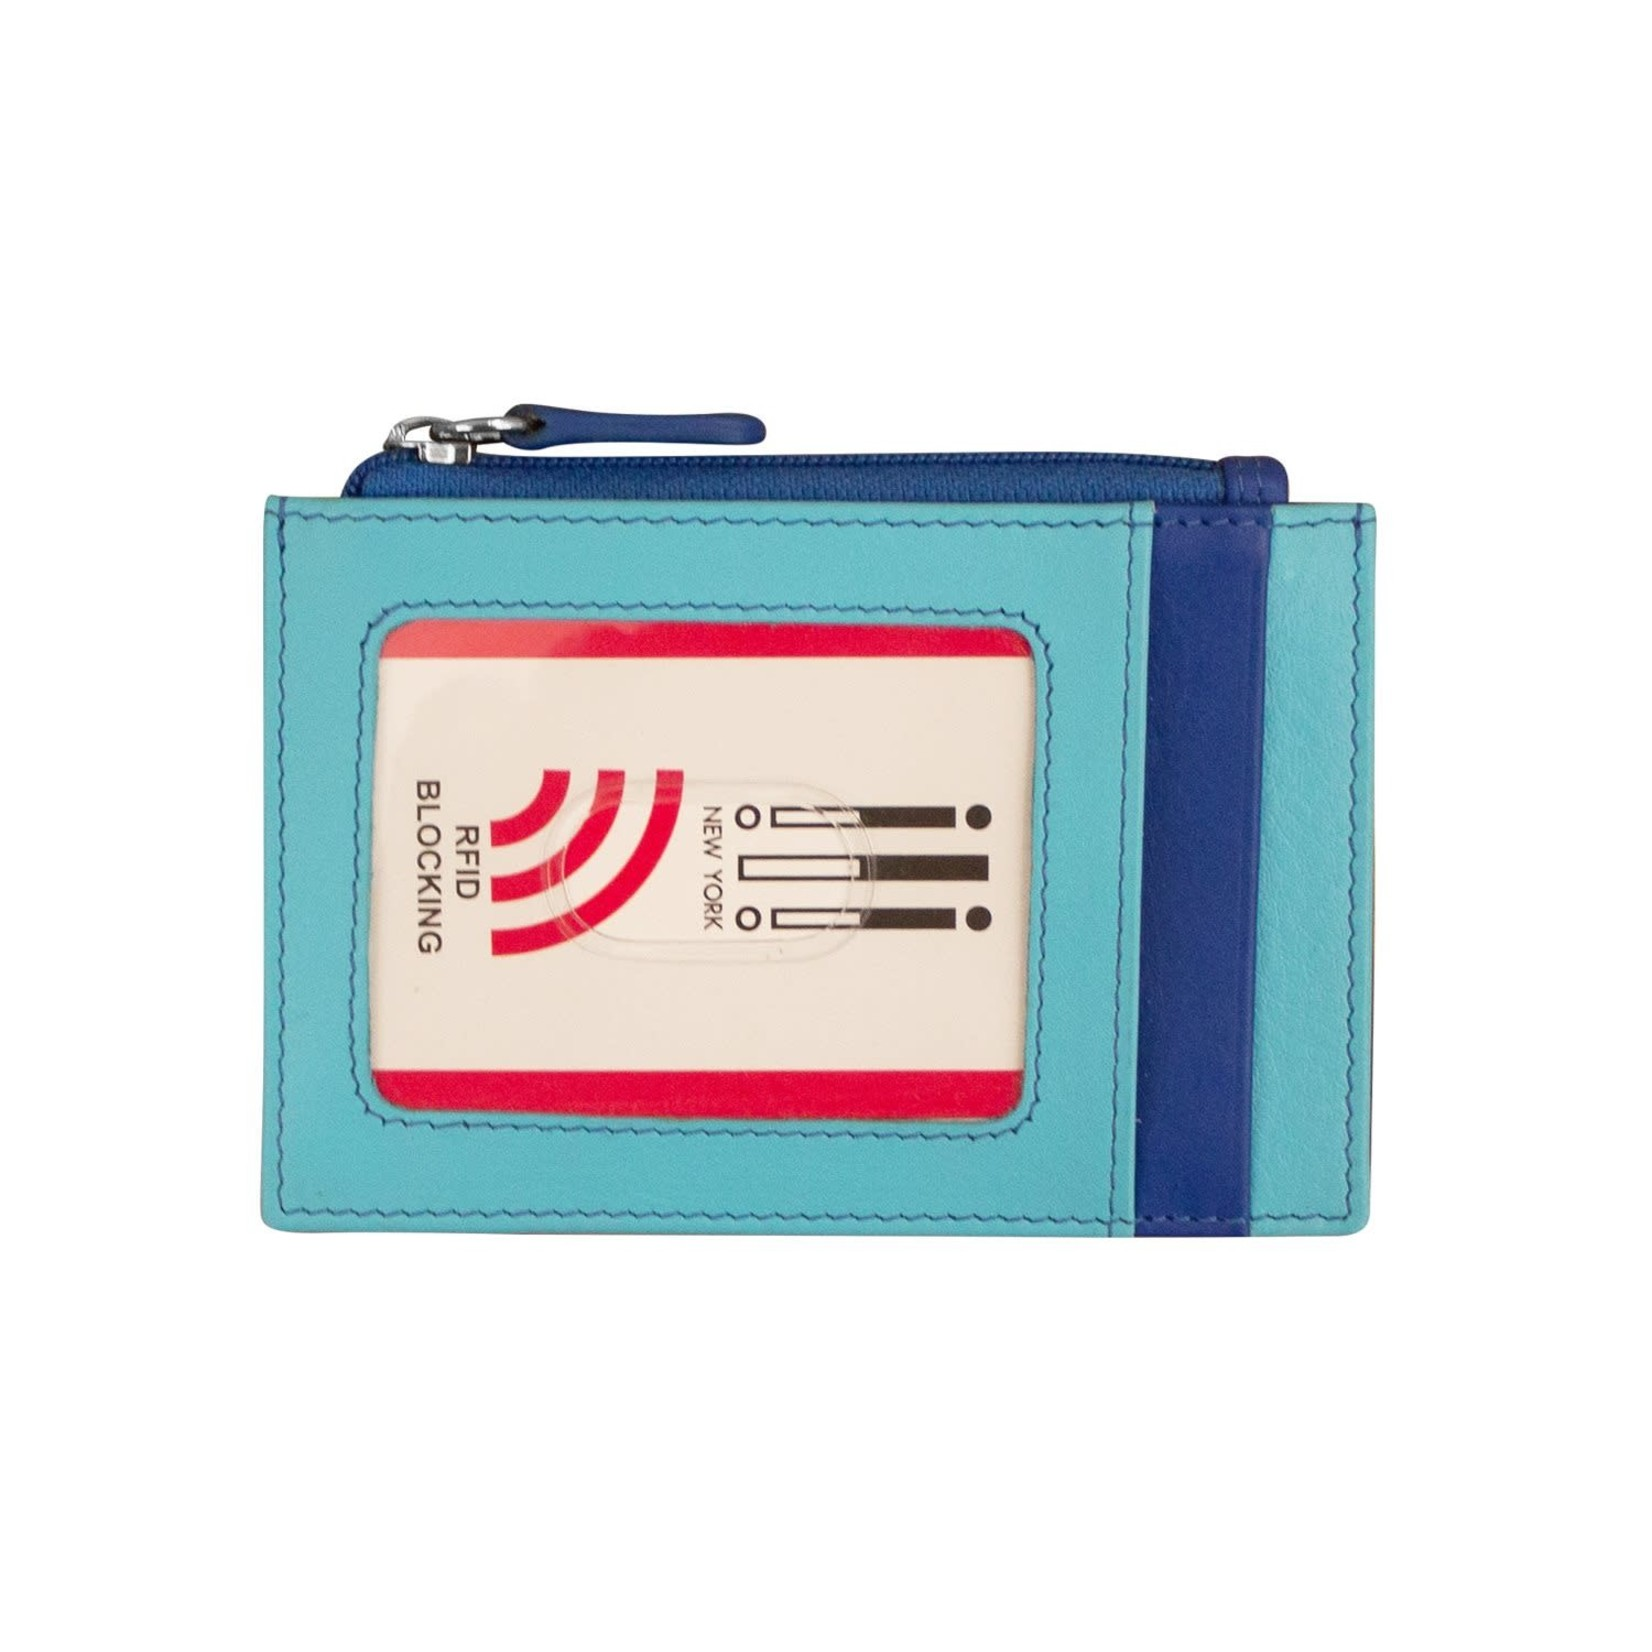 Leather Handbags and Accessories 7416 Mykonos - RFID Card Holder